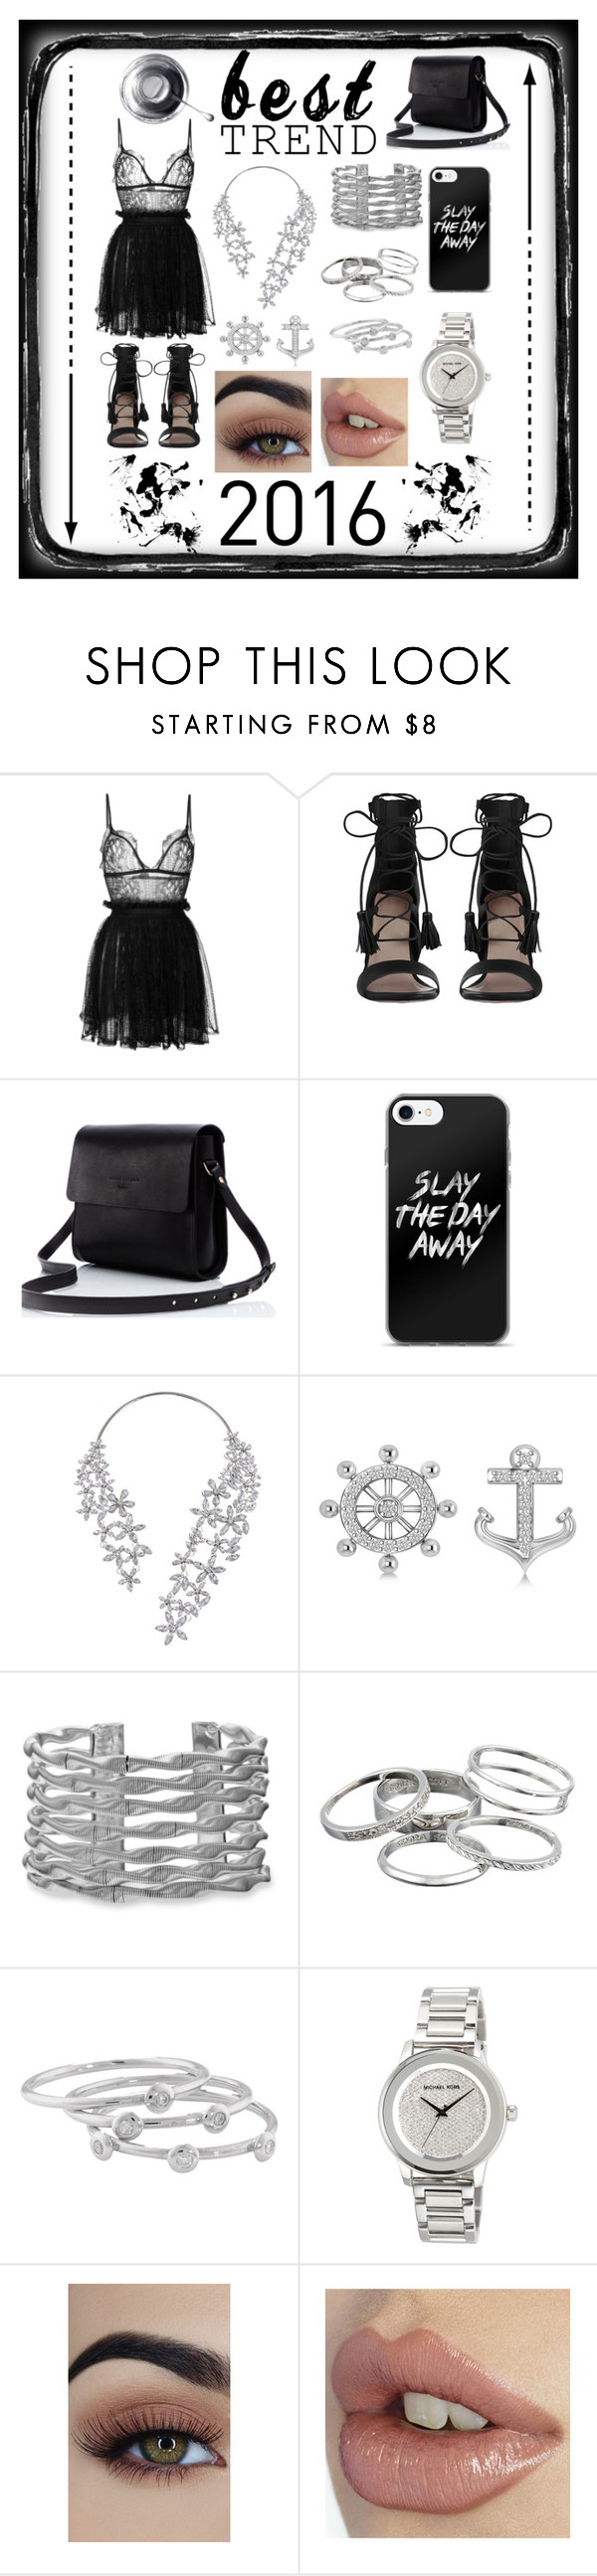 """Goodbye 2016"" by jumainakmir ❤ liked on Polyvore featuring Alexander McQueen, Zimmermann, Allurez, Kendra Scott, London Road, MICHAEL Michael Kors, lace, metallic, minidress and statementnecklaces"